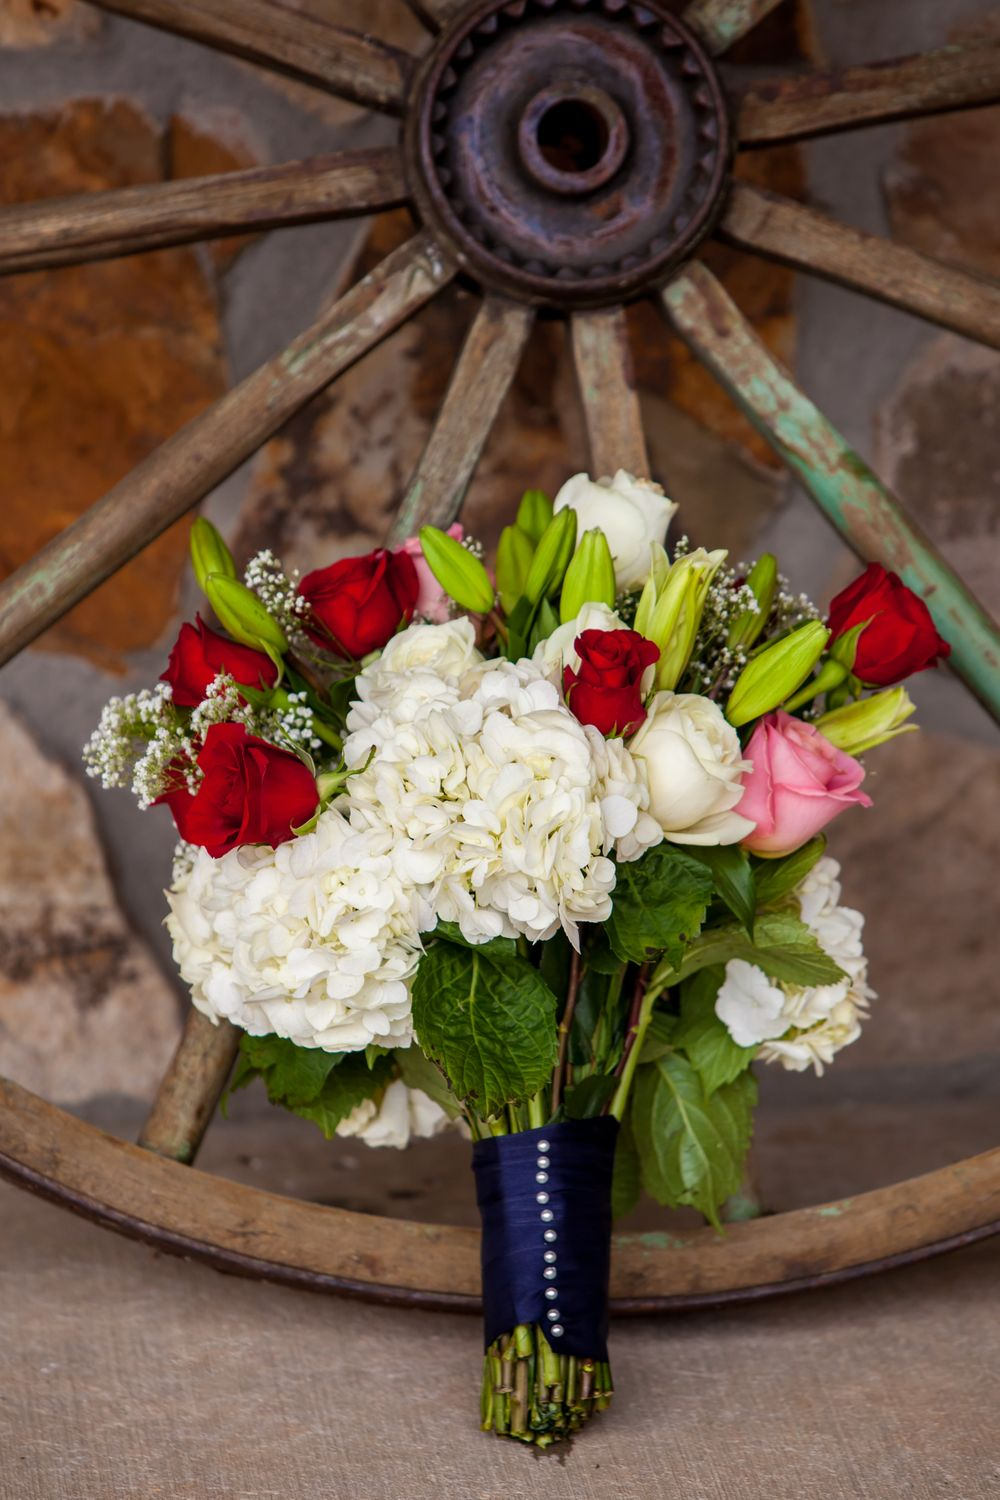 A bridal bouquet in front of a rusty wagon wheel at the Farm at Ridgeway in Ridgeway, SC